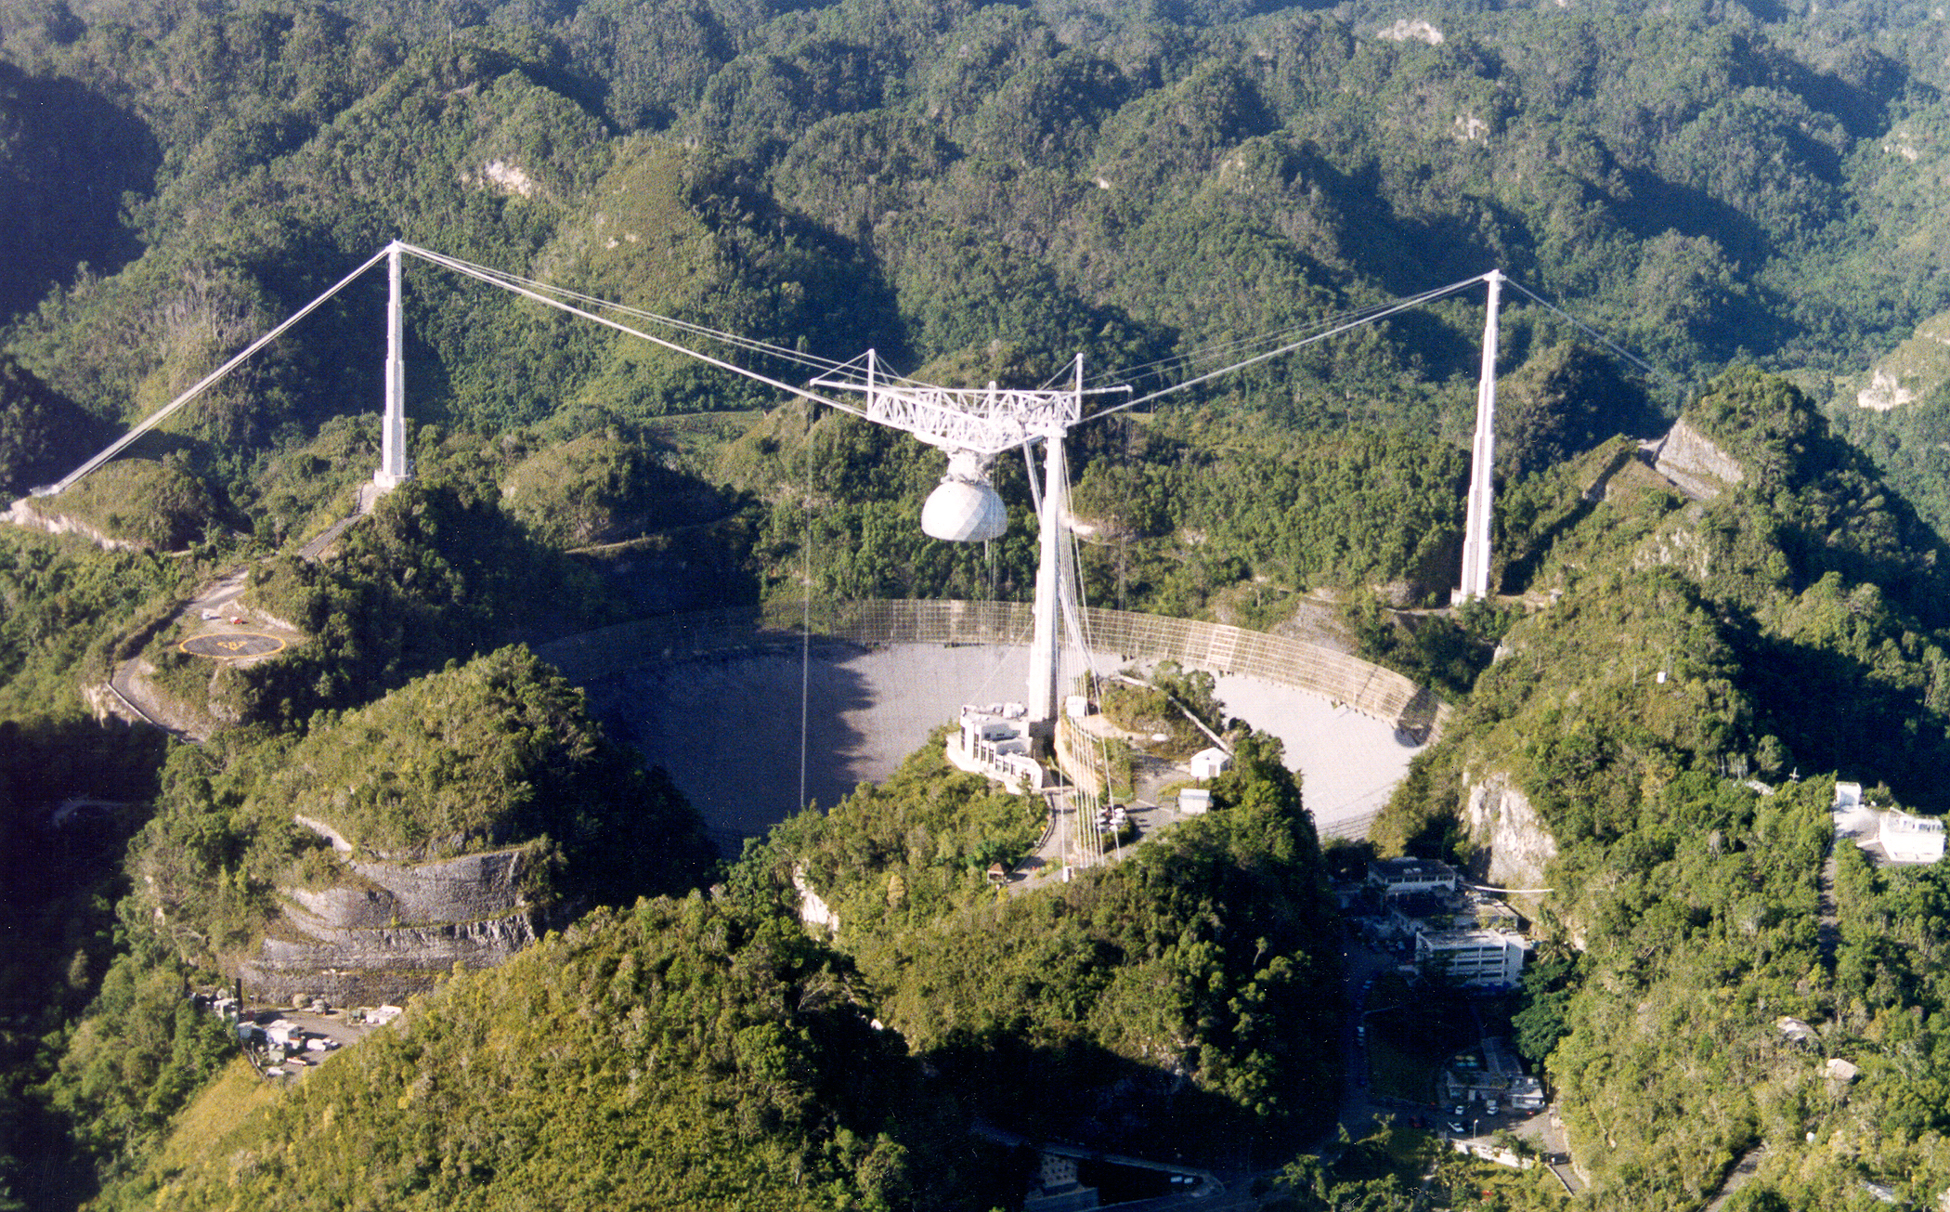 Airplane View of the Arecibo Observatory